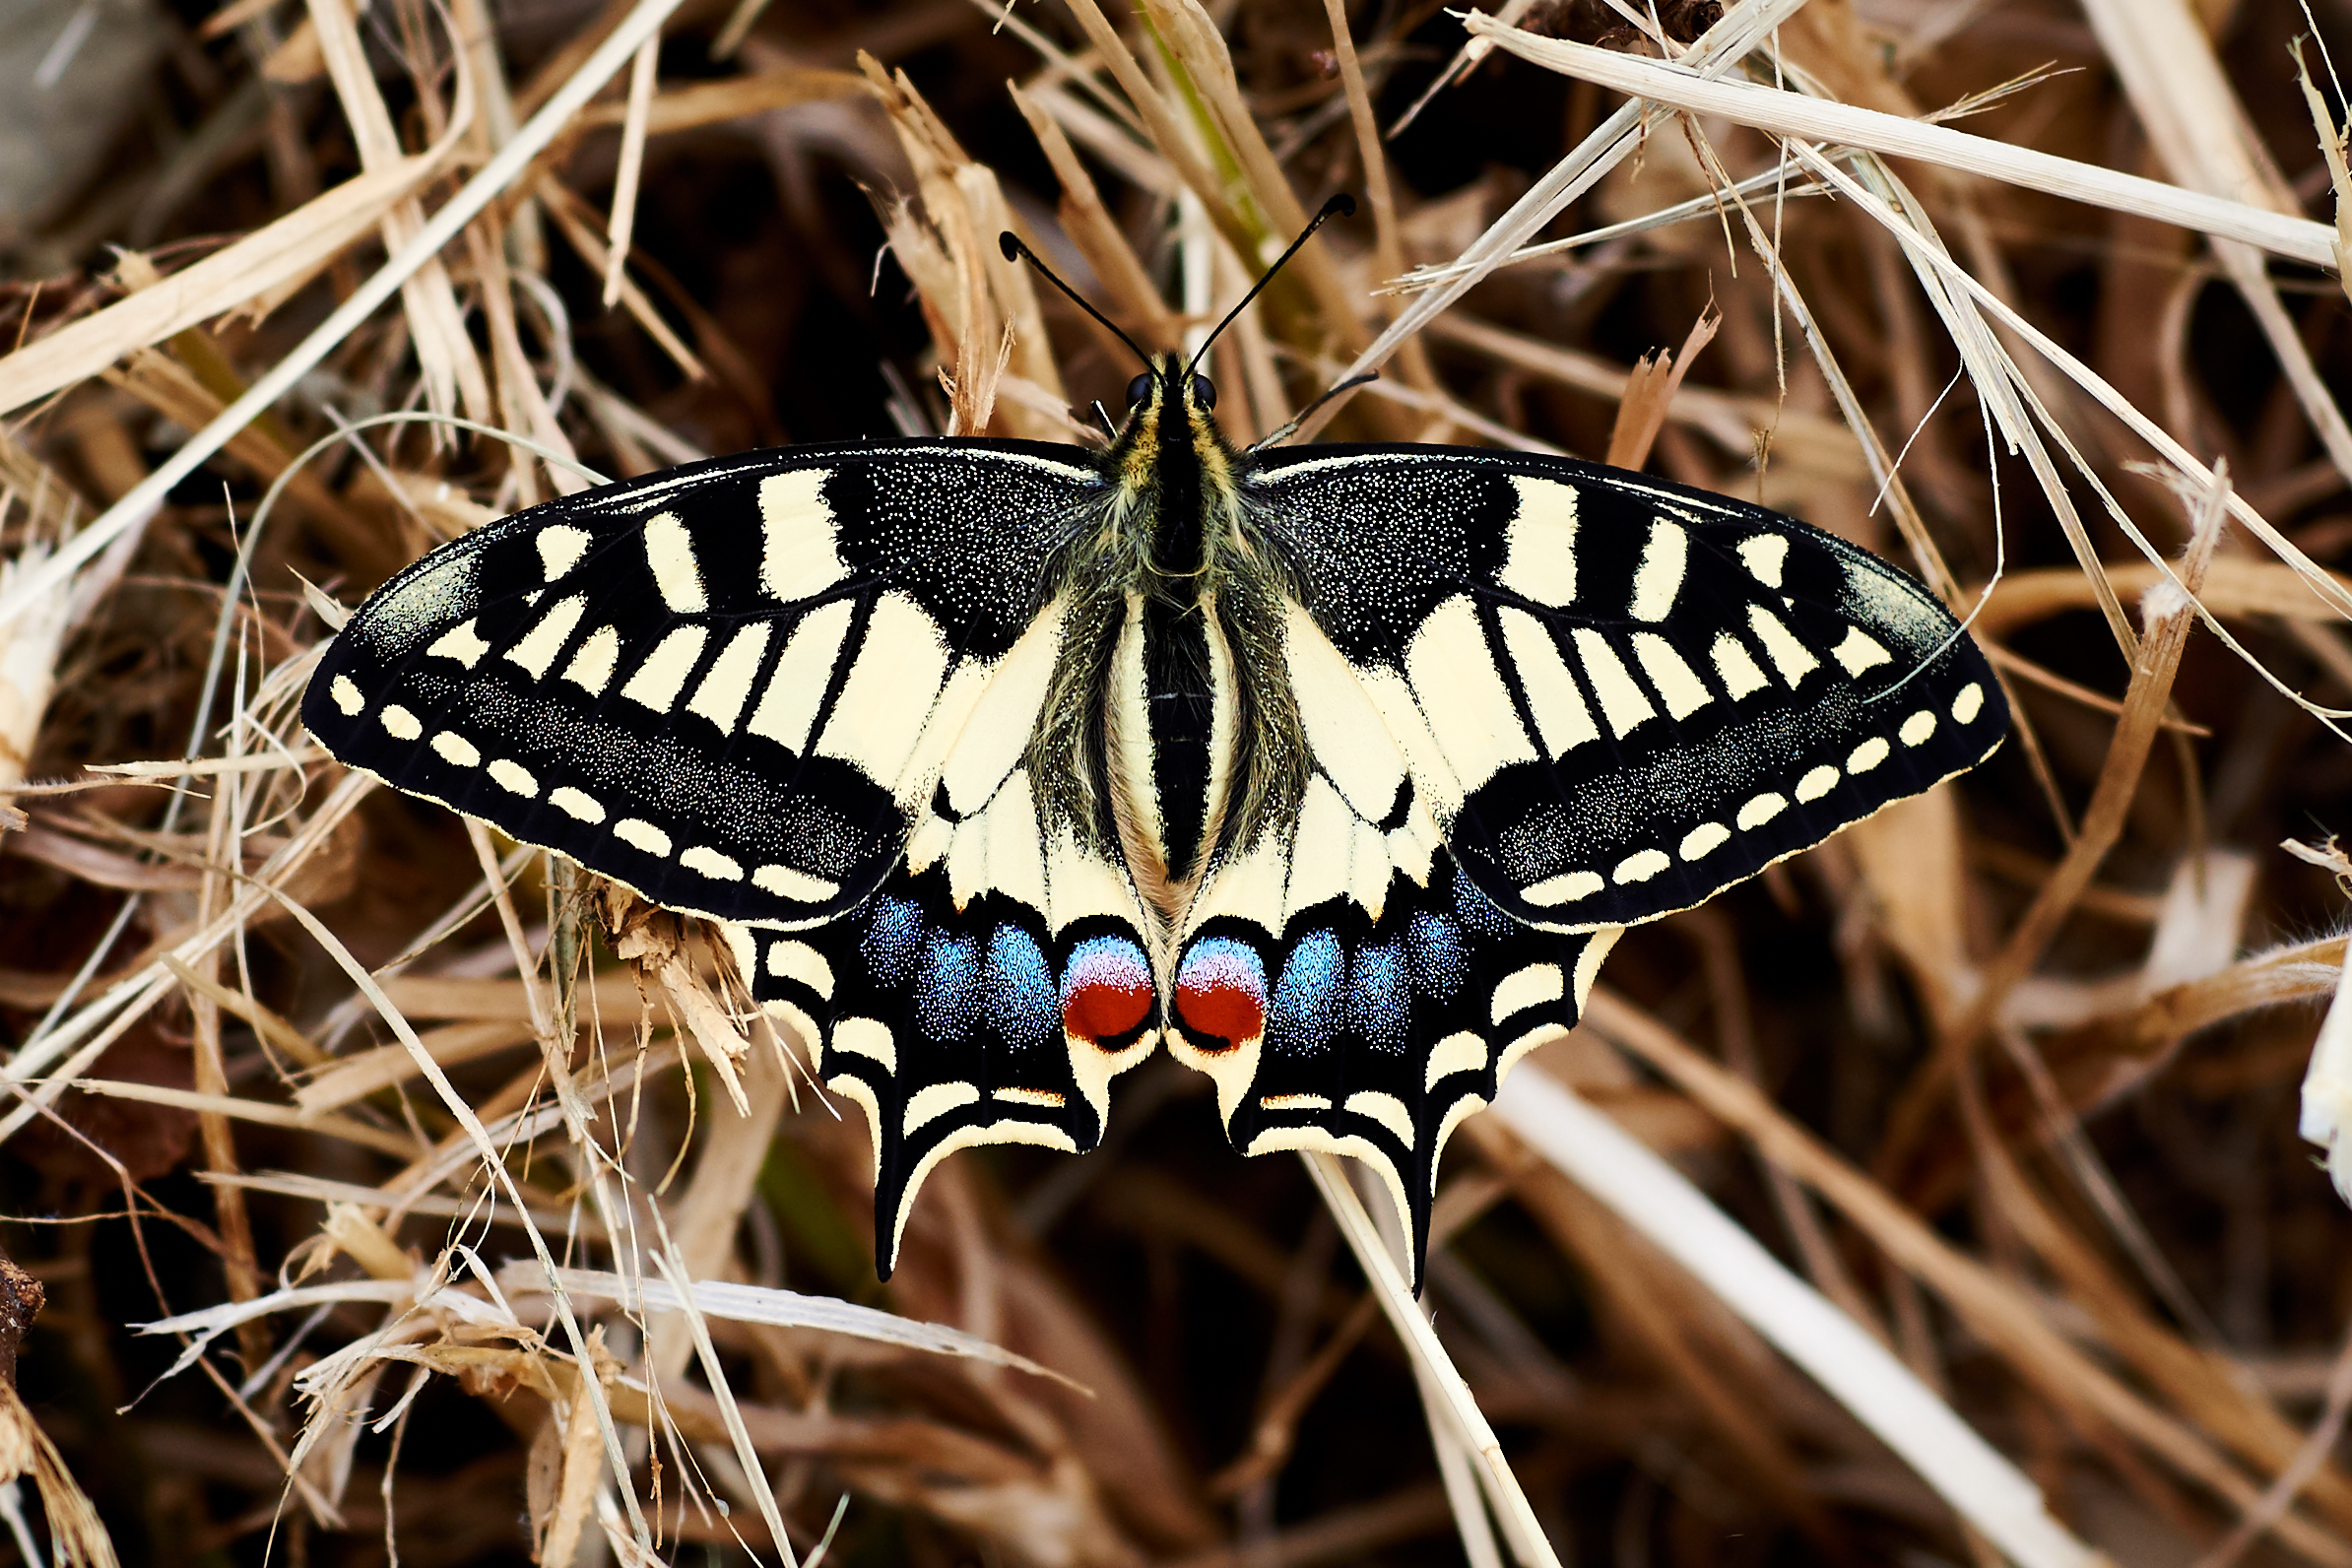 The swallowtail dries wings...